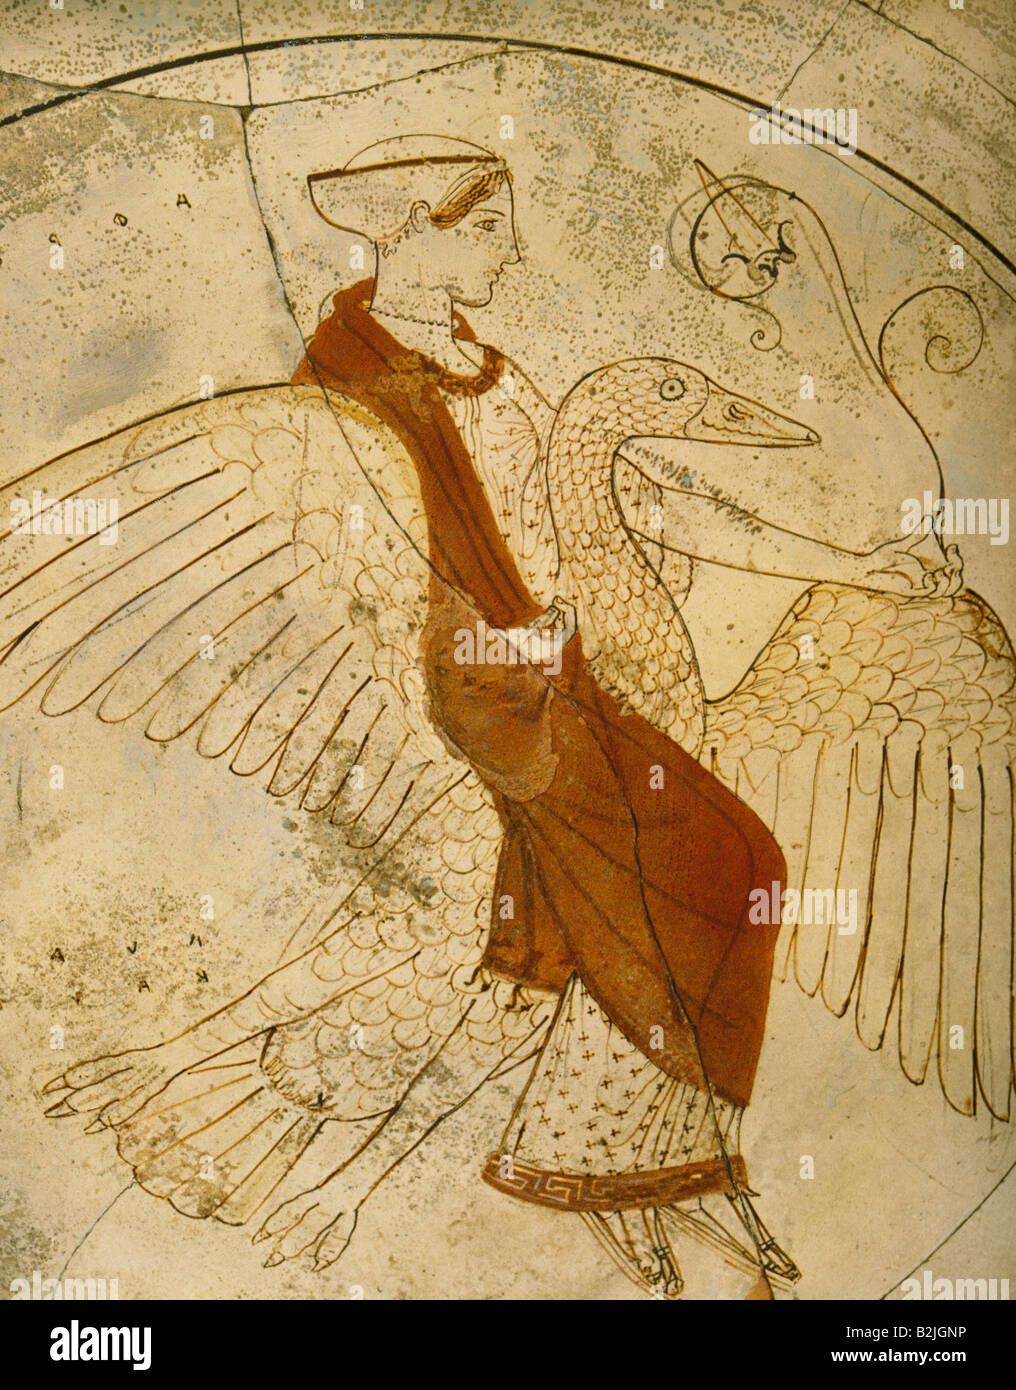 Attic vase stock photos attic vase stock images alamy fine arts ancient world greece painting vase painting aphrodite on the reviewsmspy